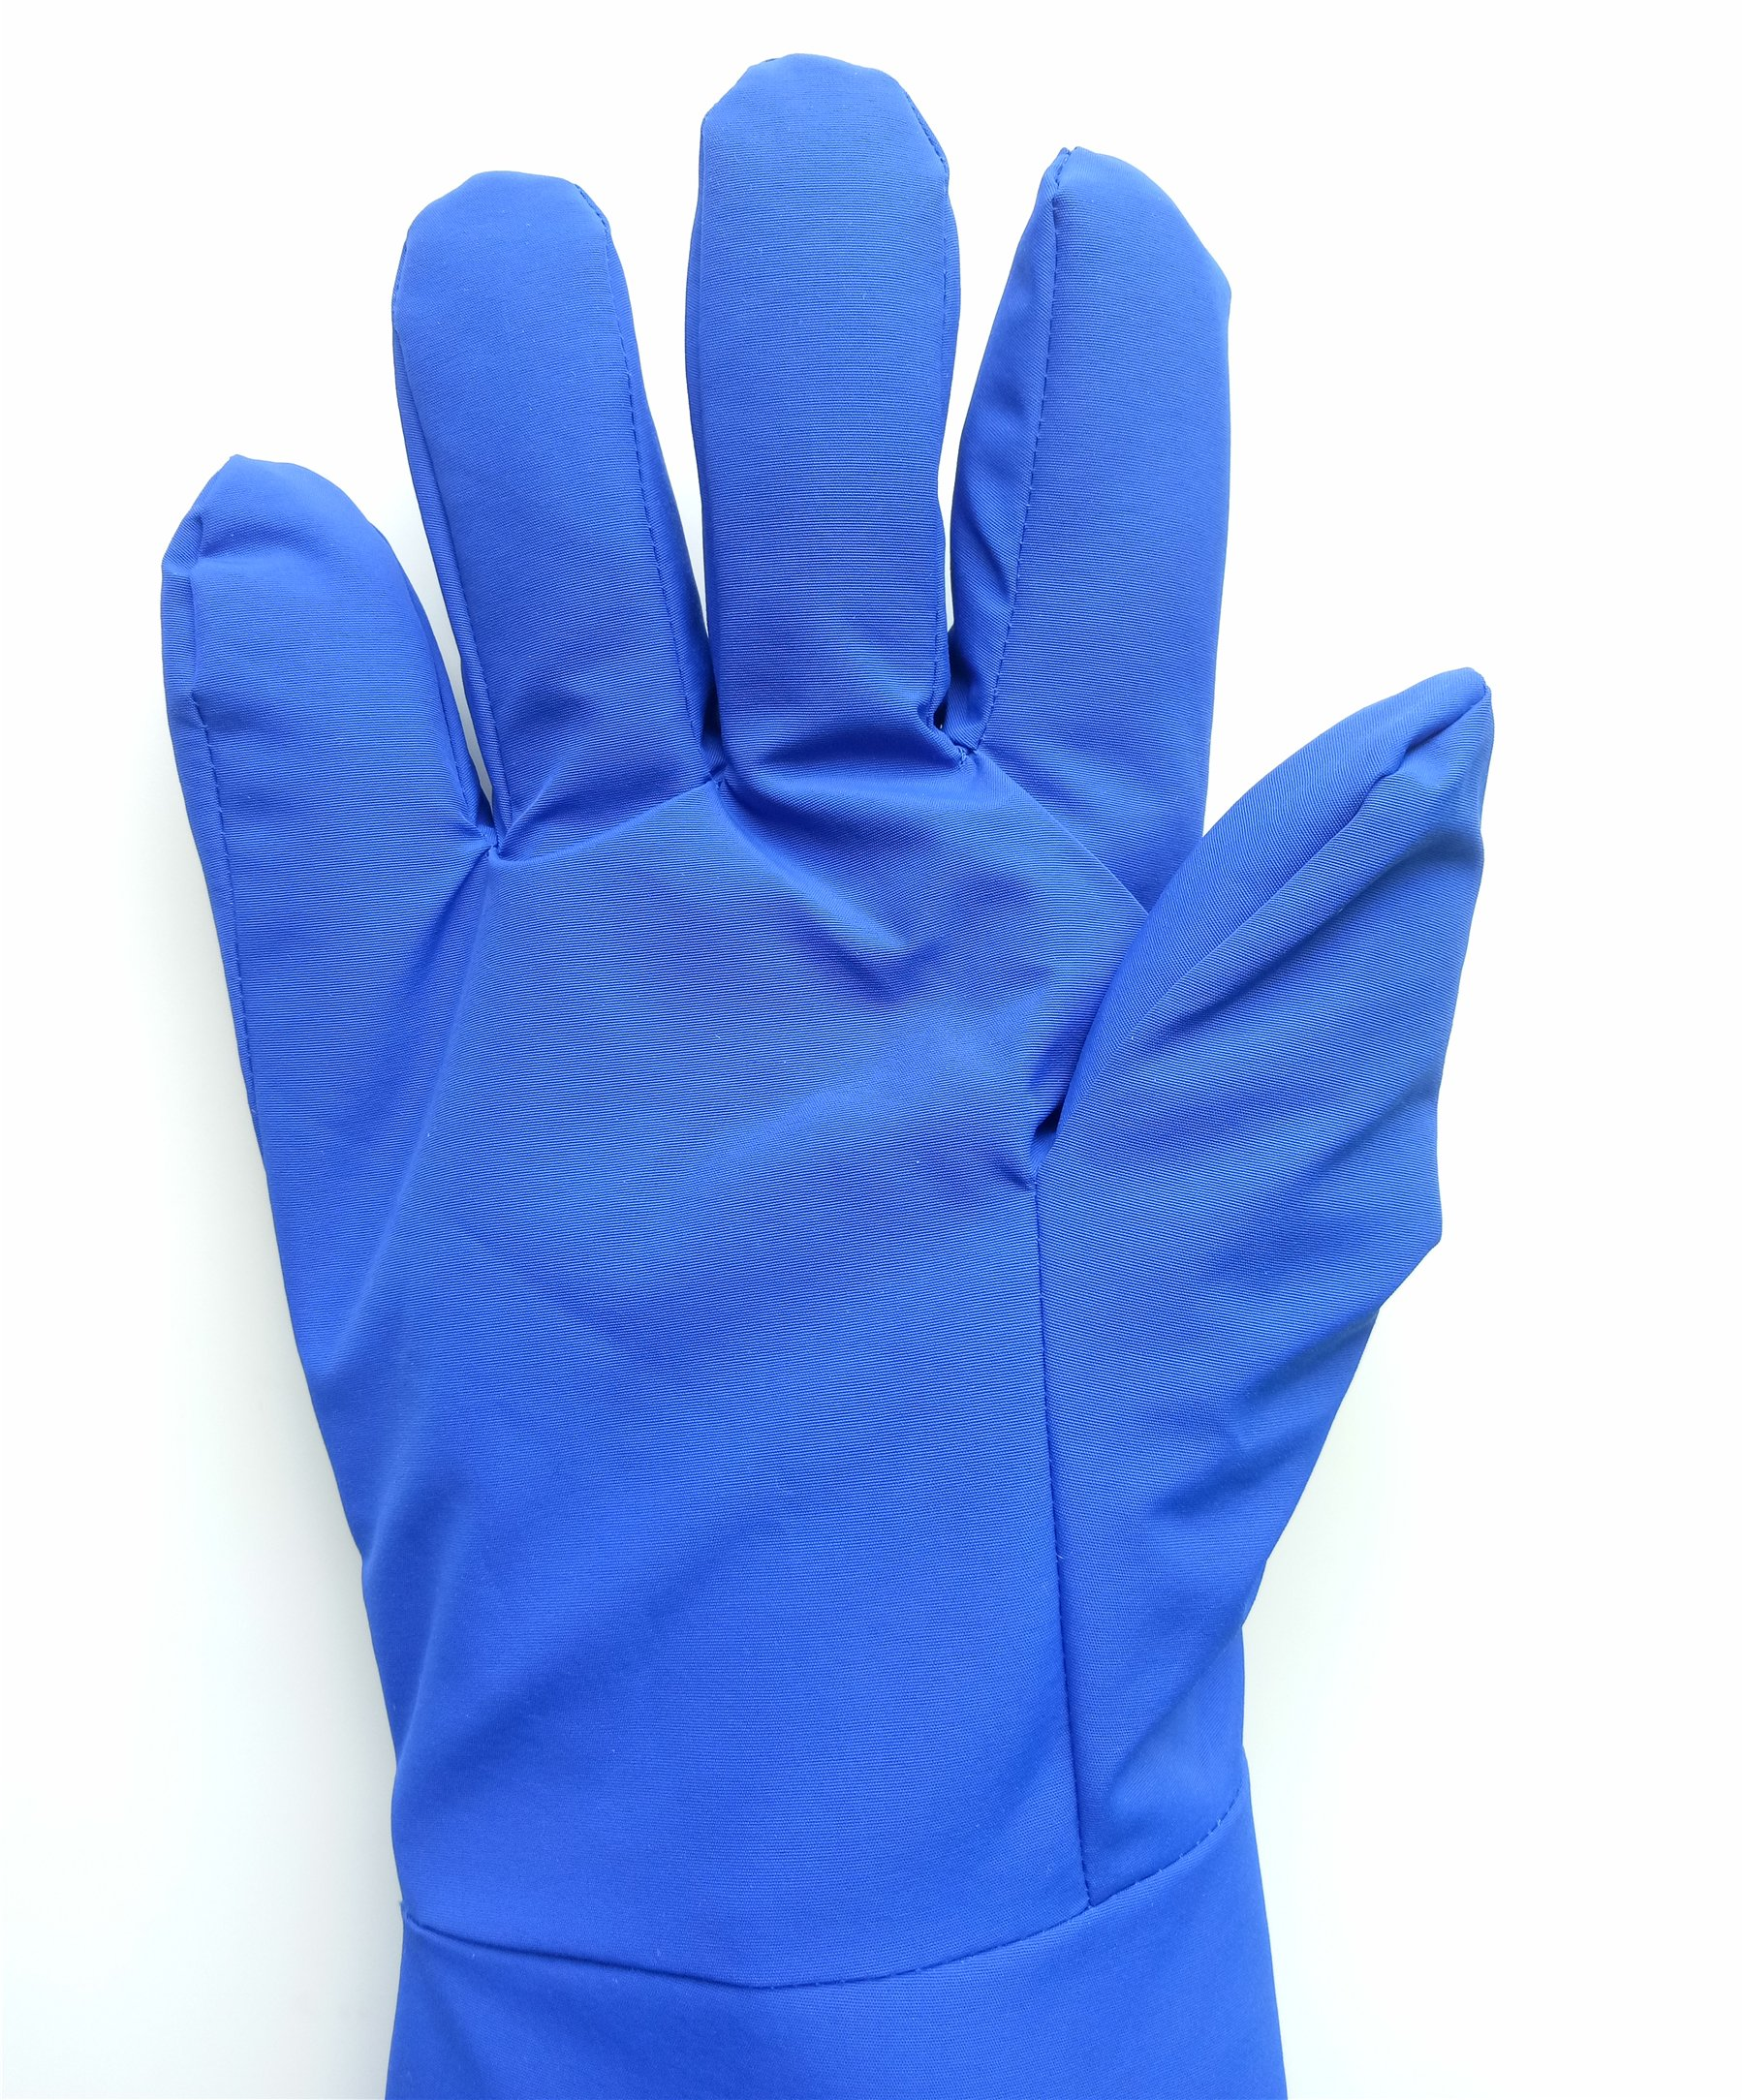 Inf-way 4 Sizes Long Cryogenic Gloves Waterproof Low Temperature Resistant LN2 Liquid Nitrogen Protective Gloves Cold Storage Safety Frozen Gloves (Blue Large) by Inf-way (Image #7)